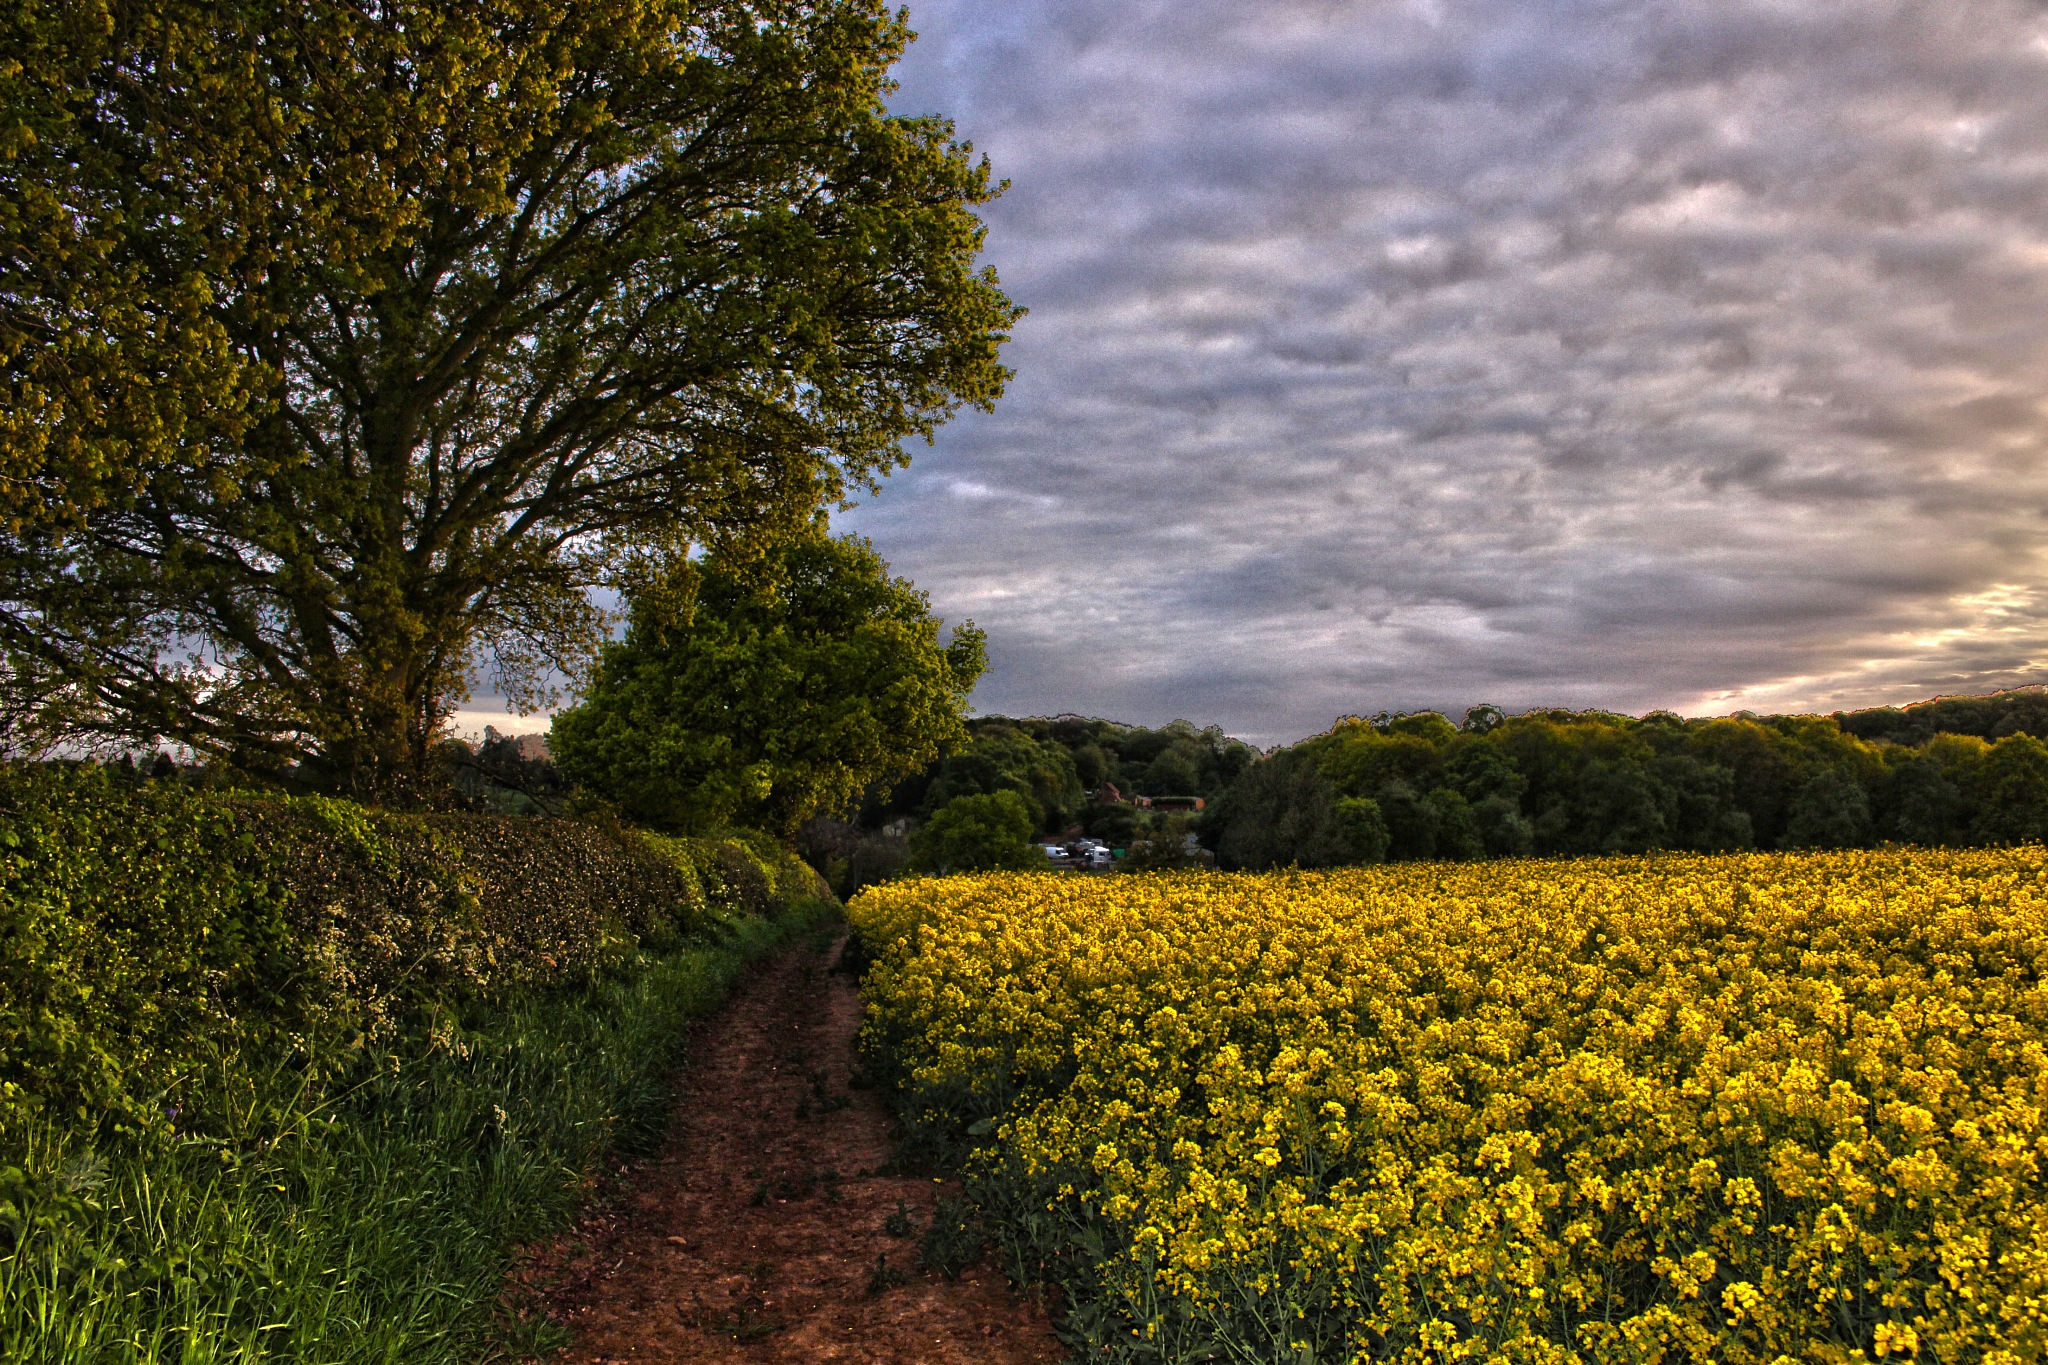 Following the scenic Path by Mark Pemberton